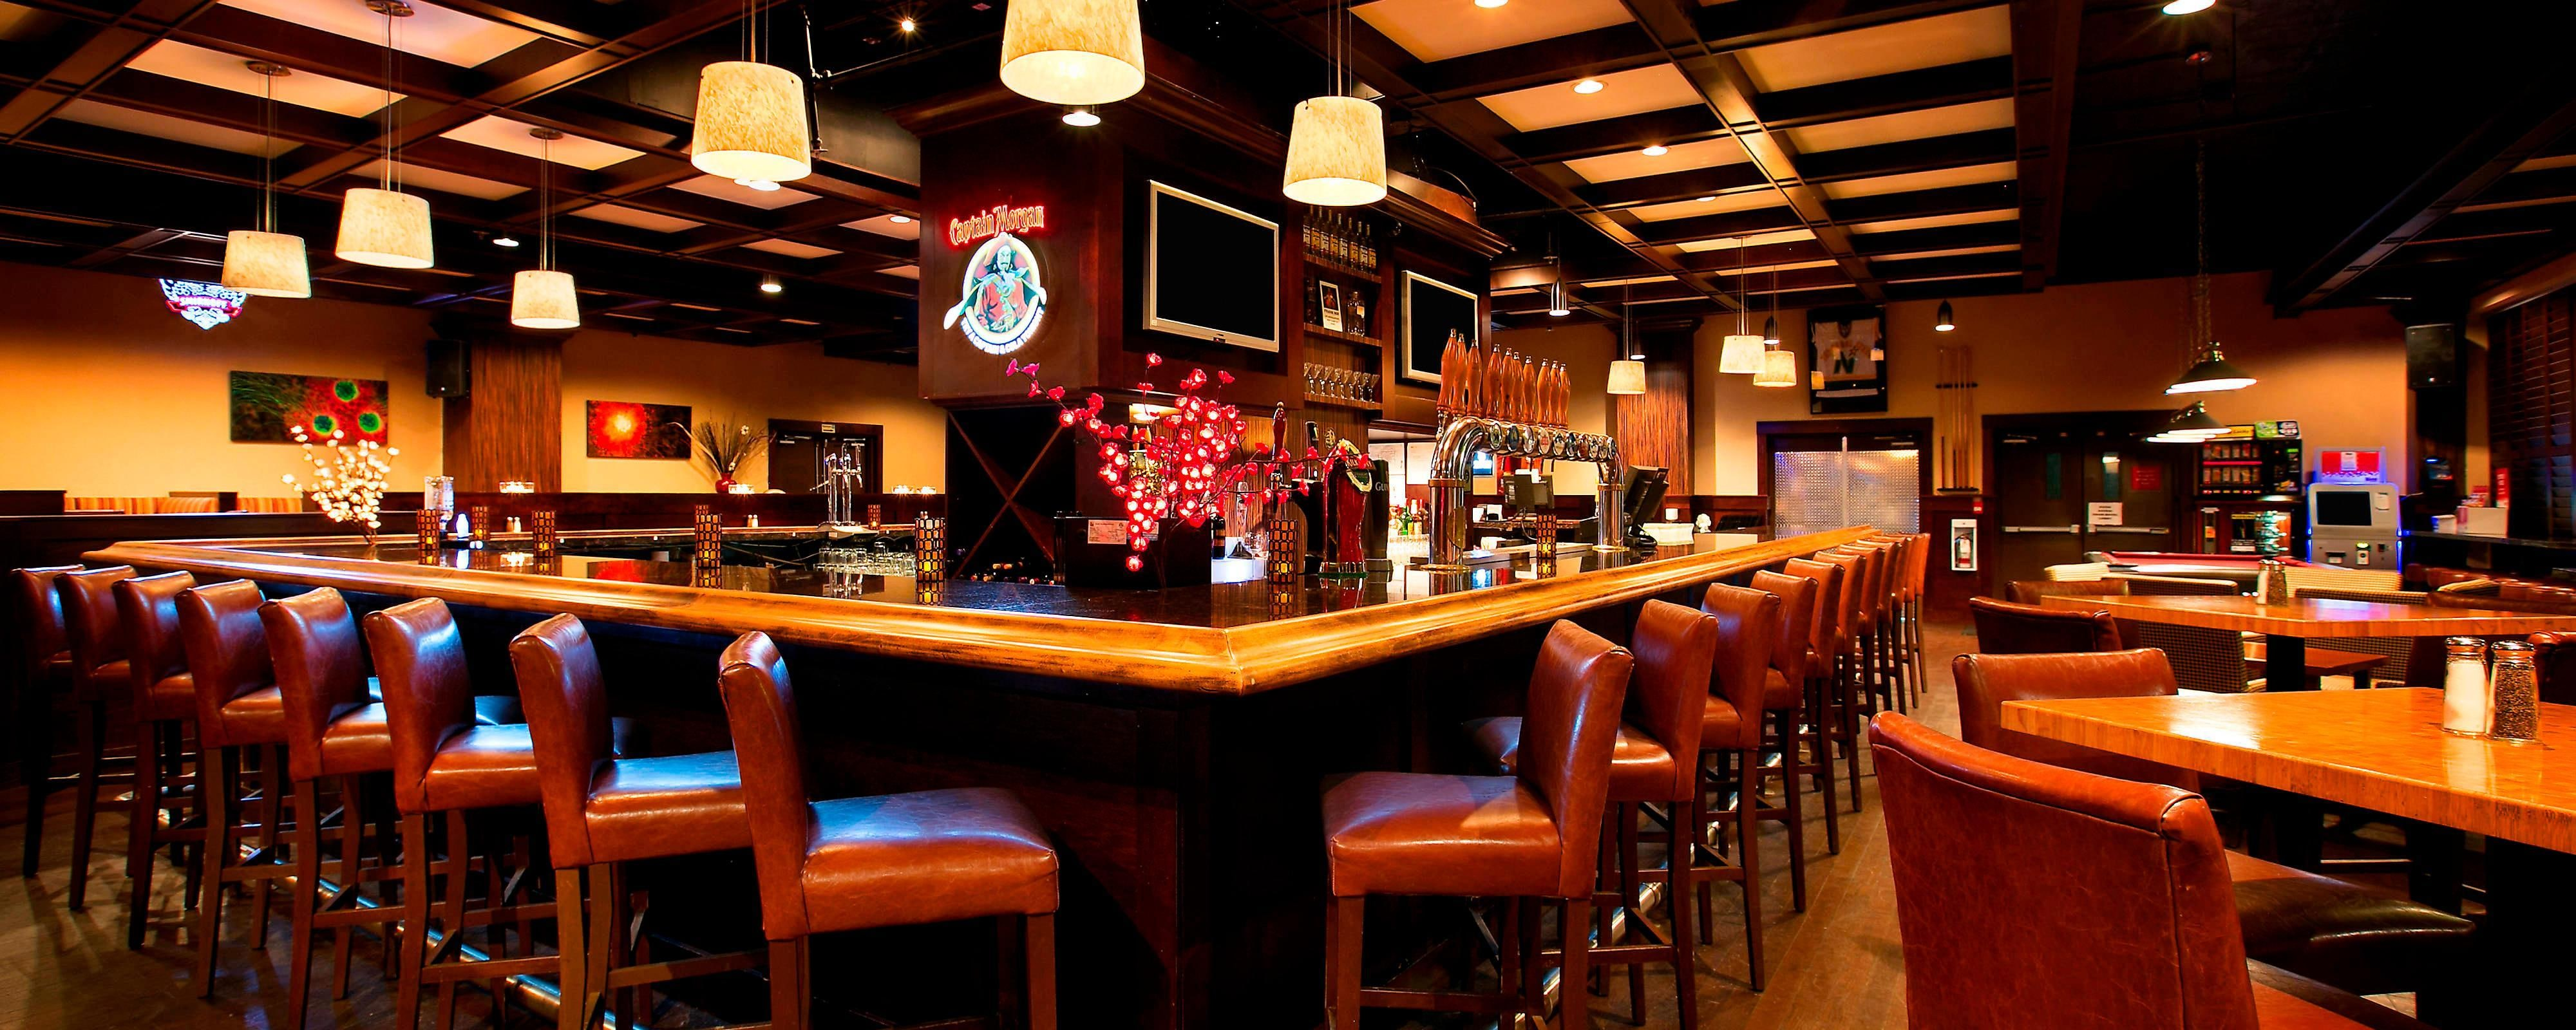 Victoria hotel restaurants and lounges | Four Points by Sheraton ...